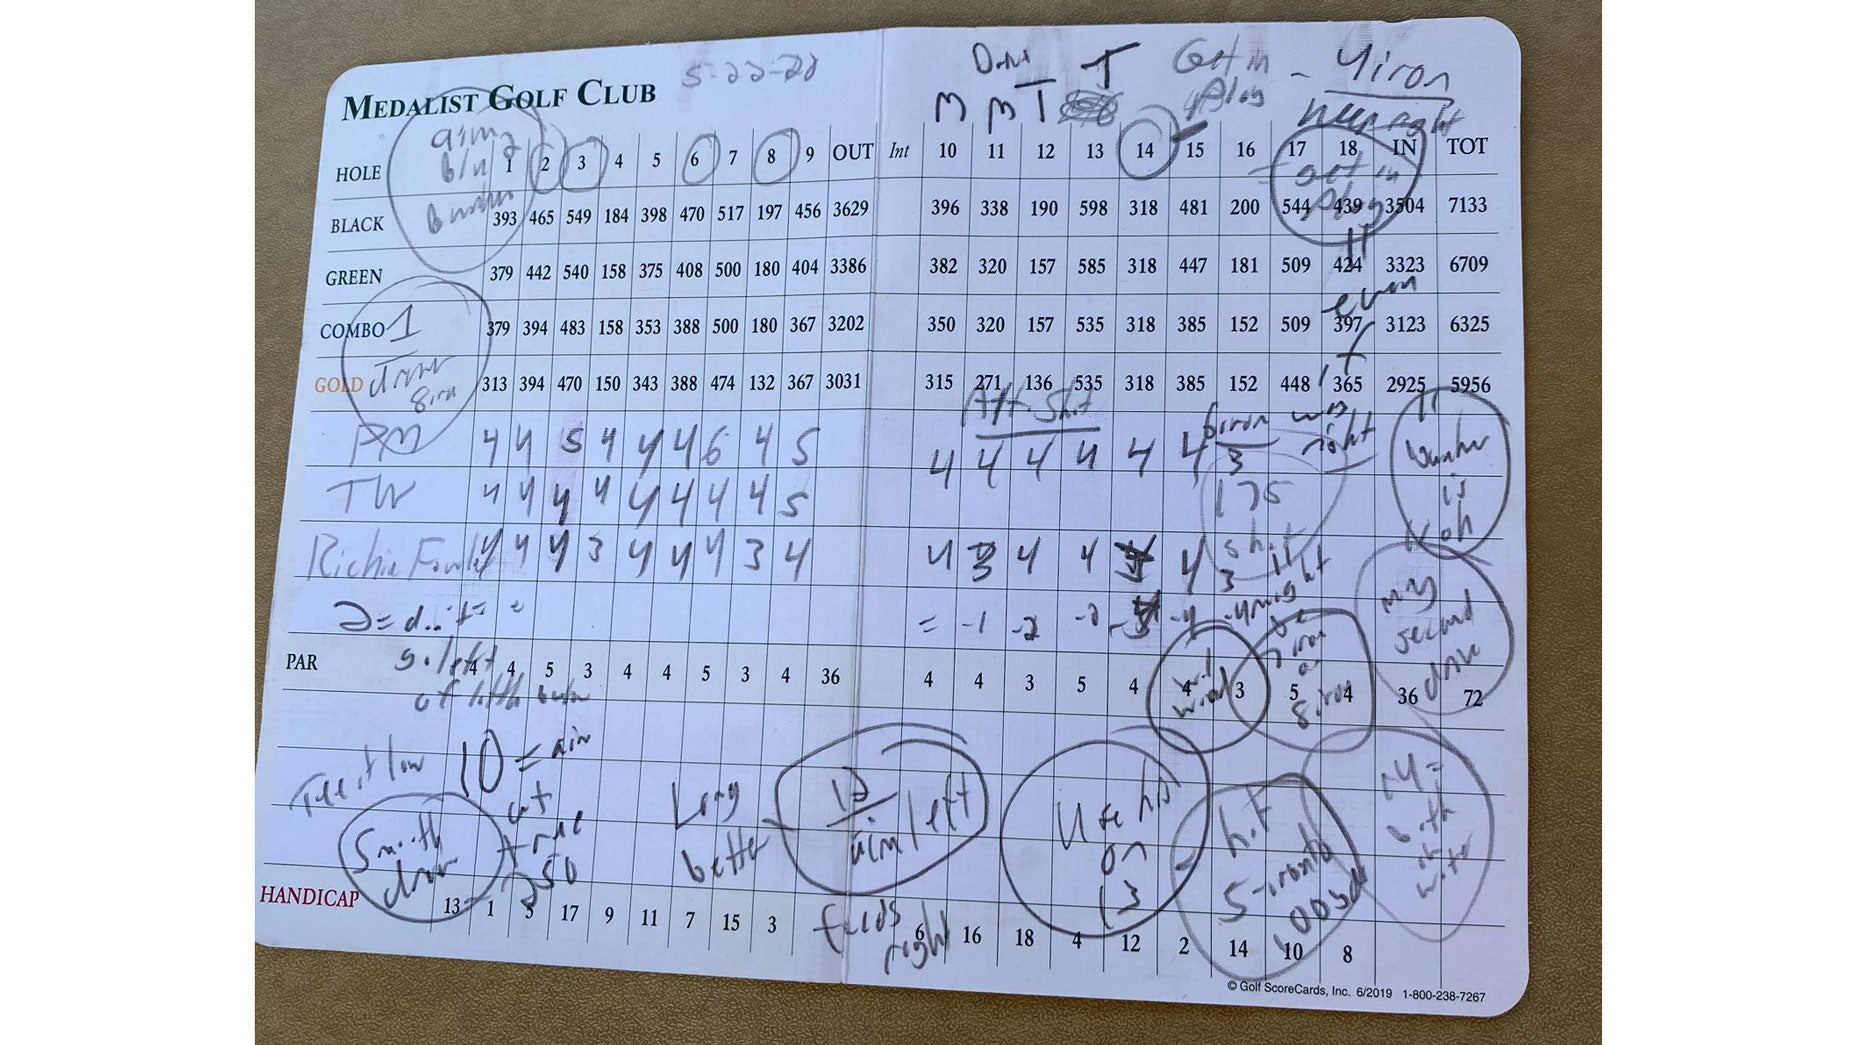 Peyton Manning's scorecard on Friday at Medalist Golf Club.